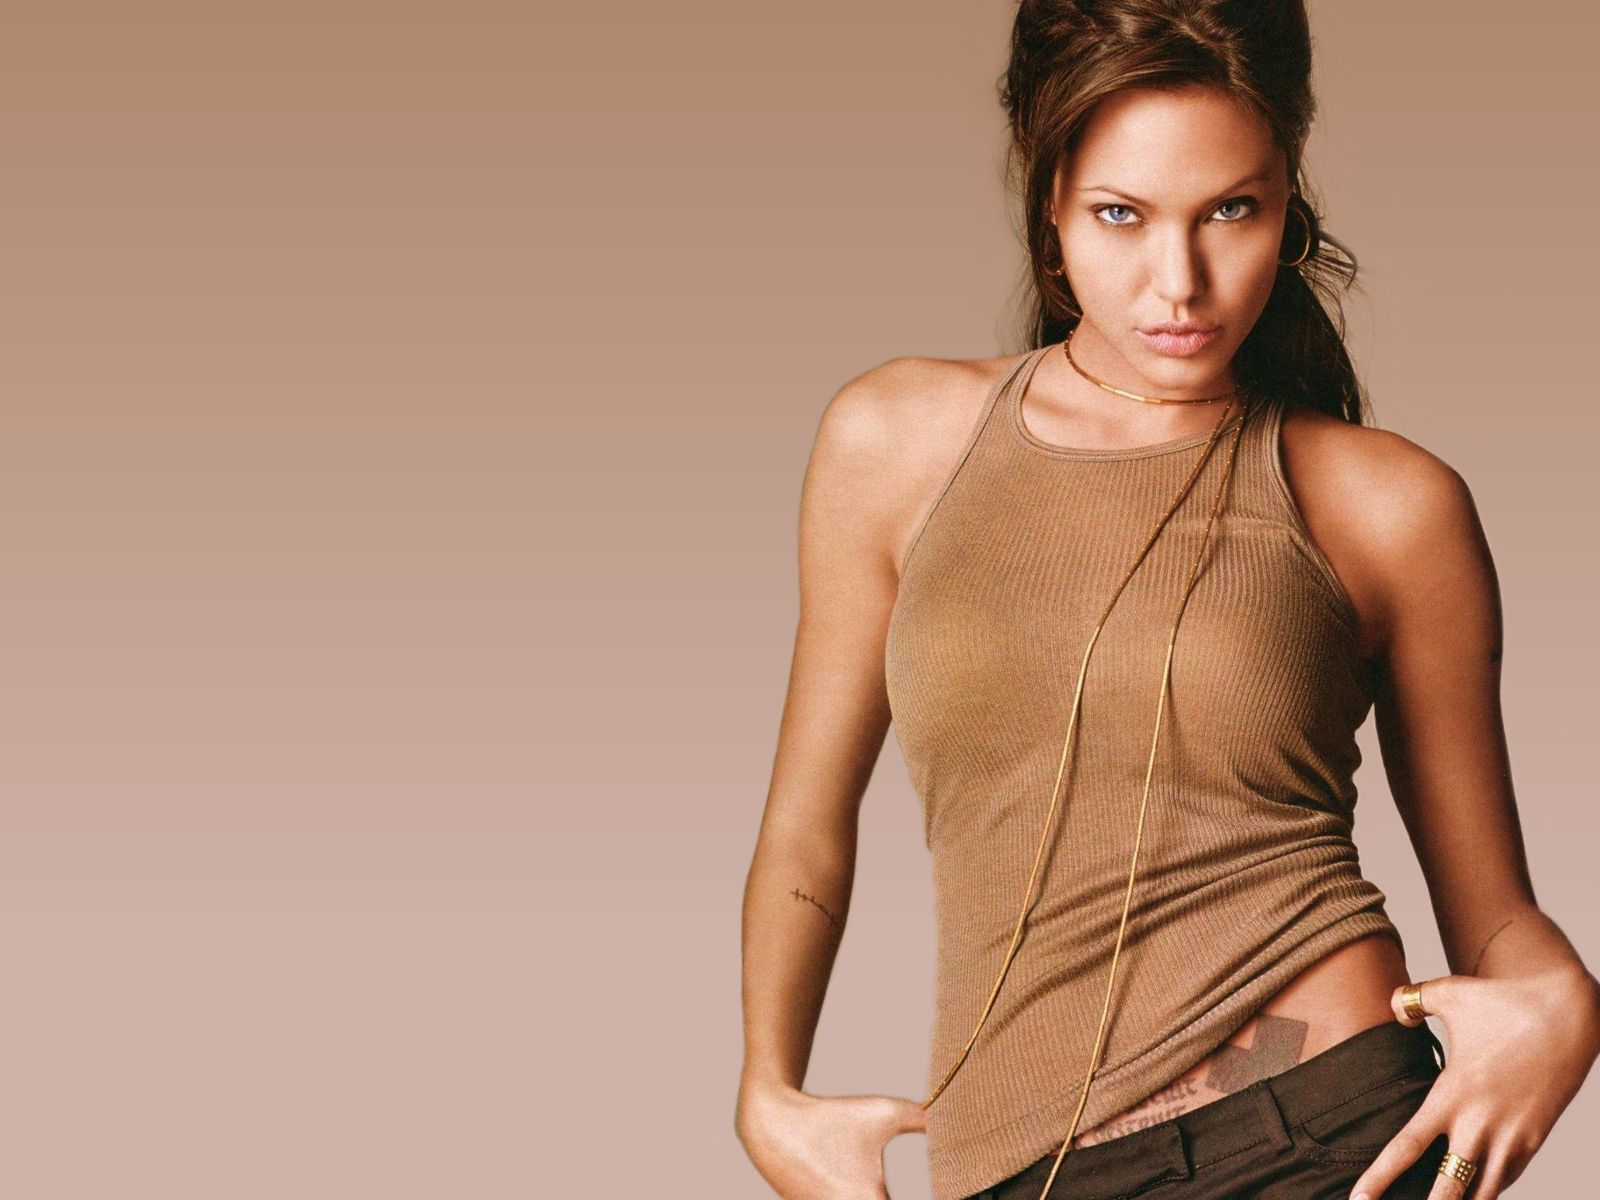 Hollywood actress angelina jolie sexy wallpapers all hd wallpapers desktop background